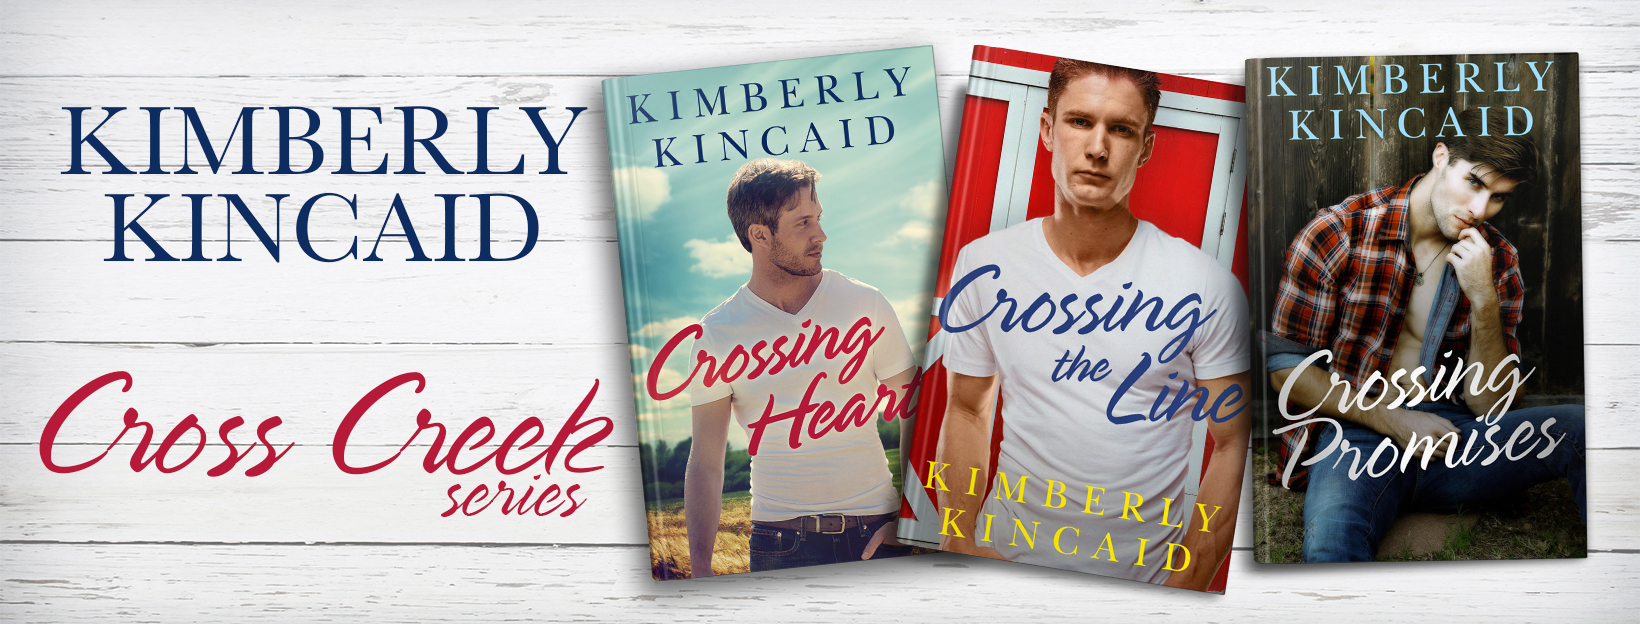 BOOK REVIEW - Crossing Hearts (Cross Creek #1) by Kimberly Kincaid